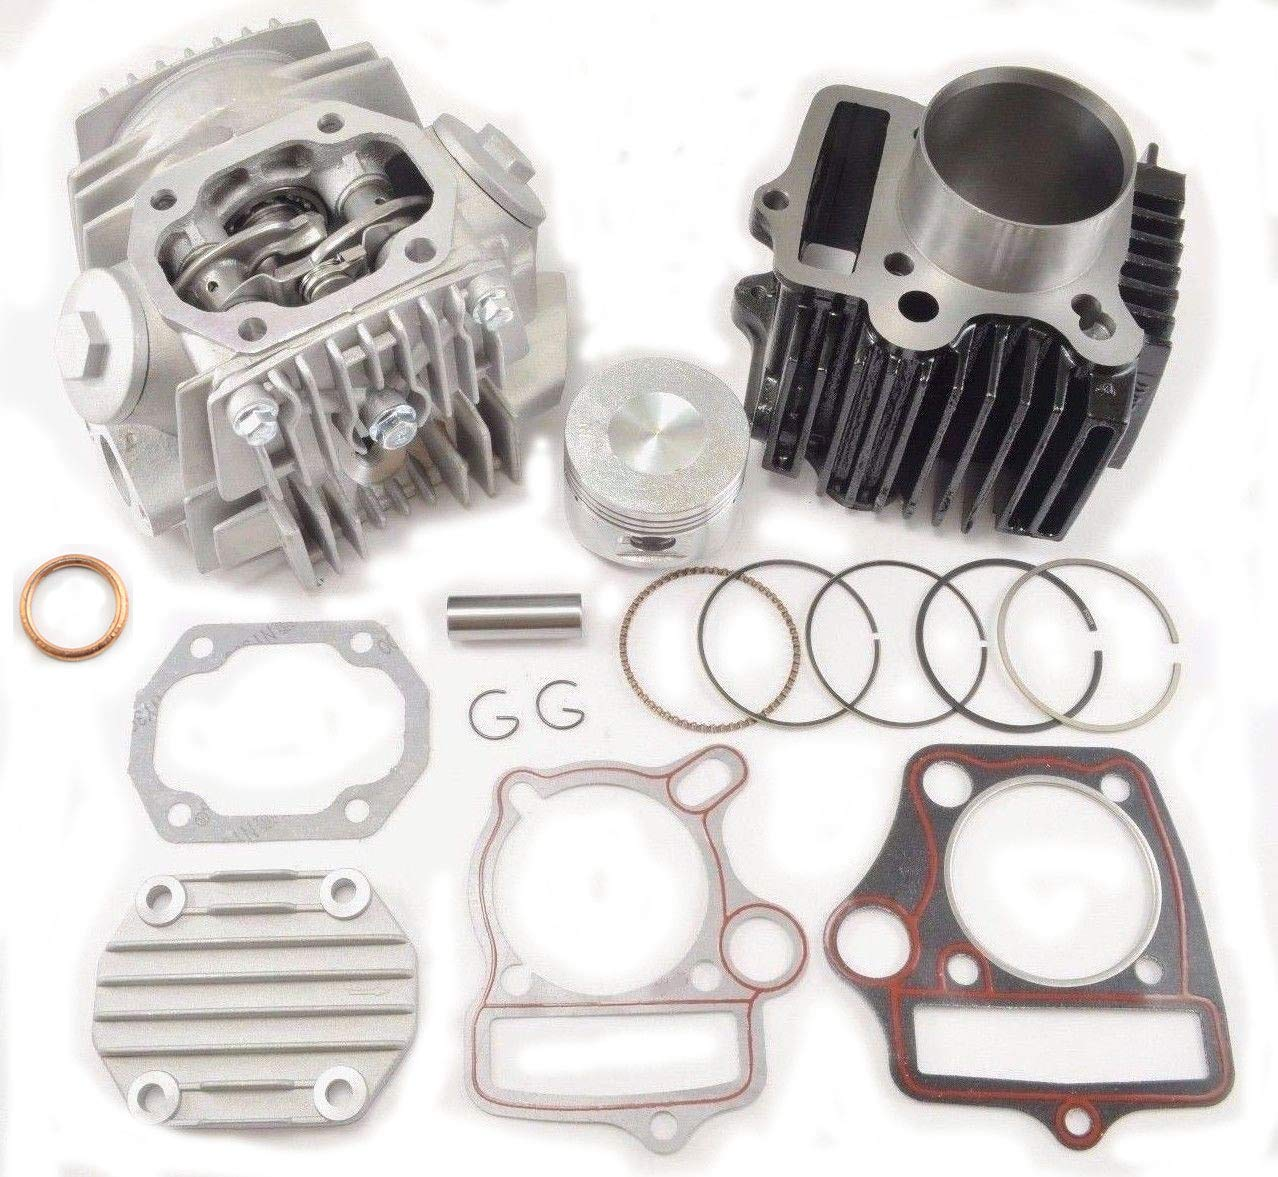 CYLINDER and Head KIT 1P52FMH (52.4mm) Compatible with 110CC ROKETA TAOTAO SSR ATV DIRT BIKE QUAD Jonway by WhatApart